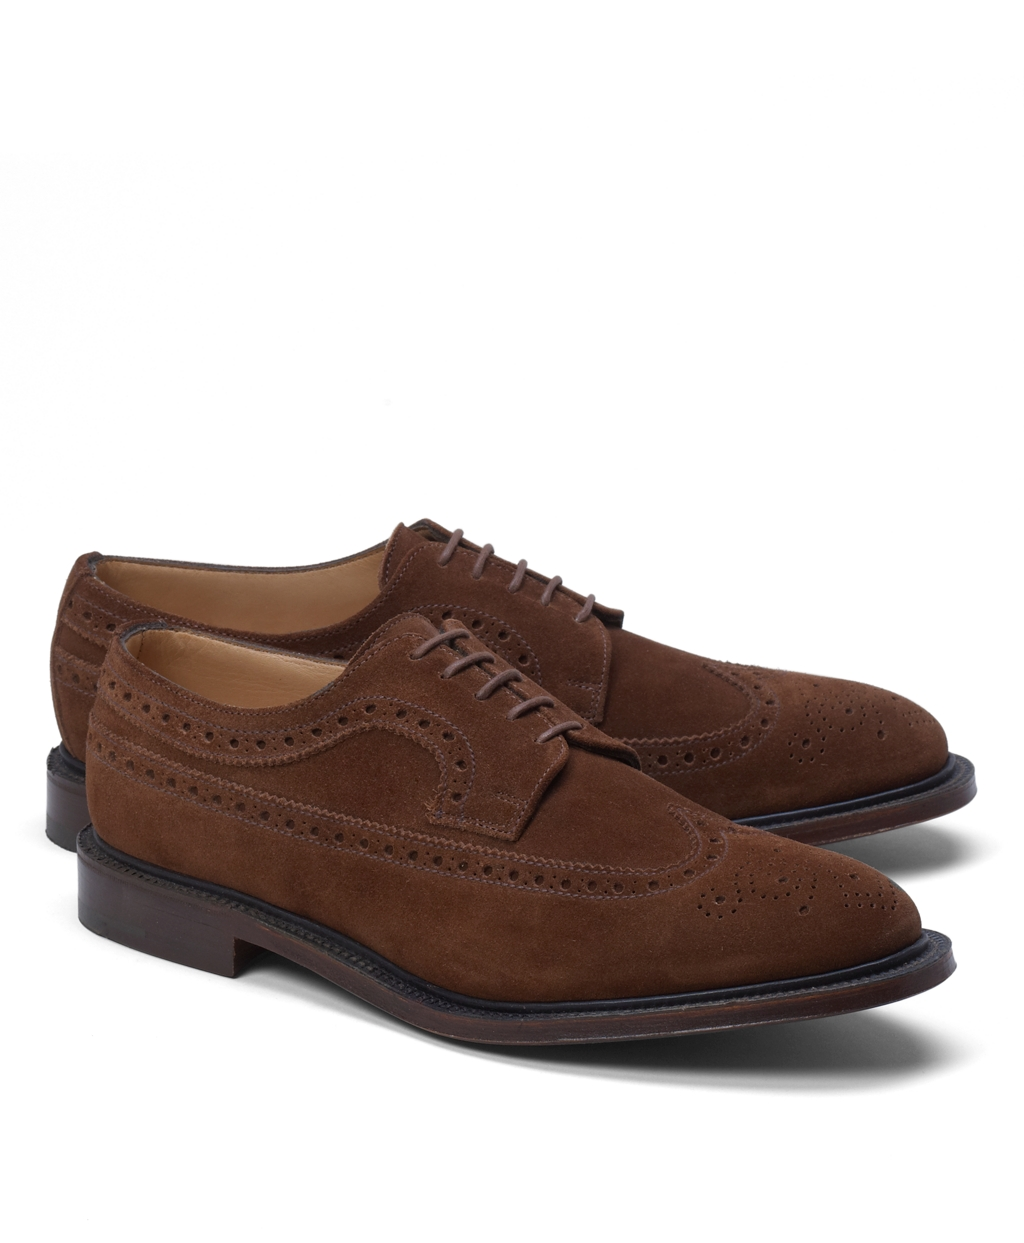 Brooks brothers Peal & Co.® Suede Long Wingtips in Brown ...